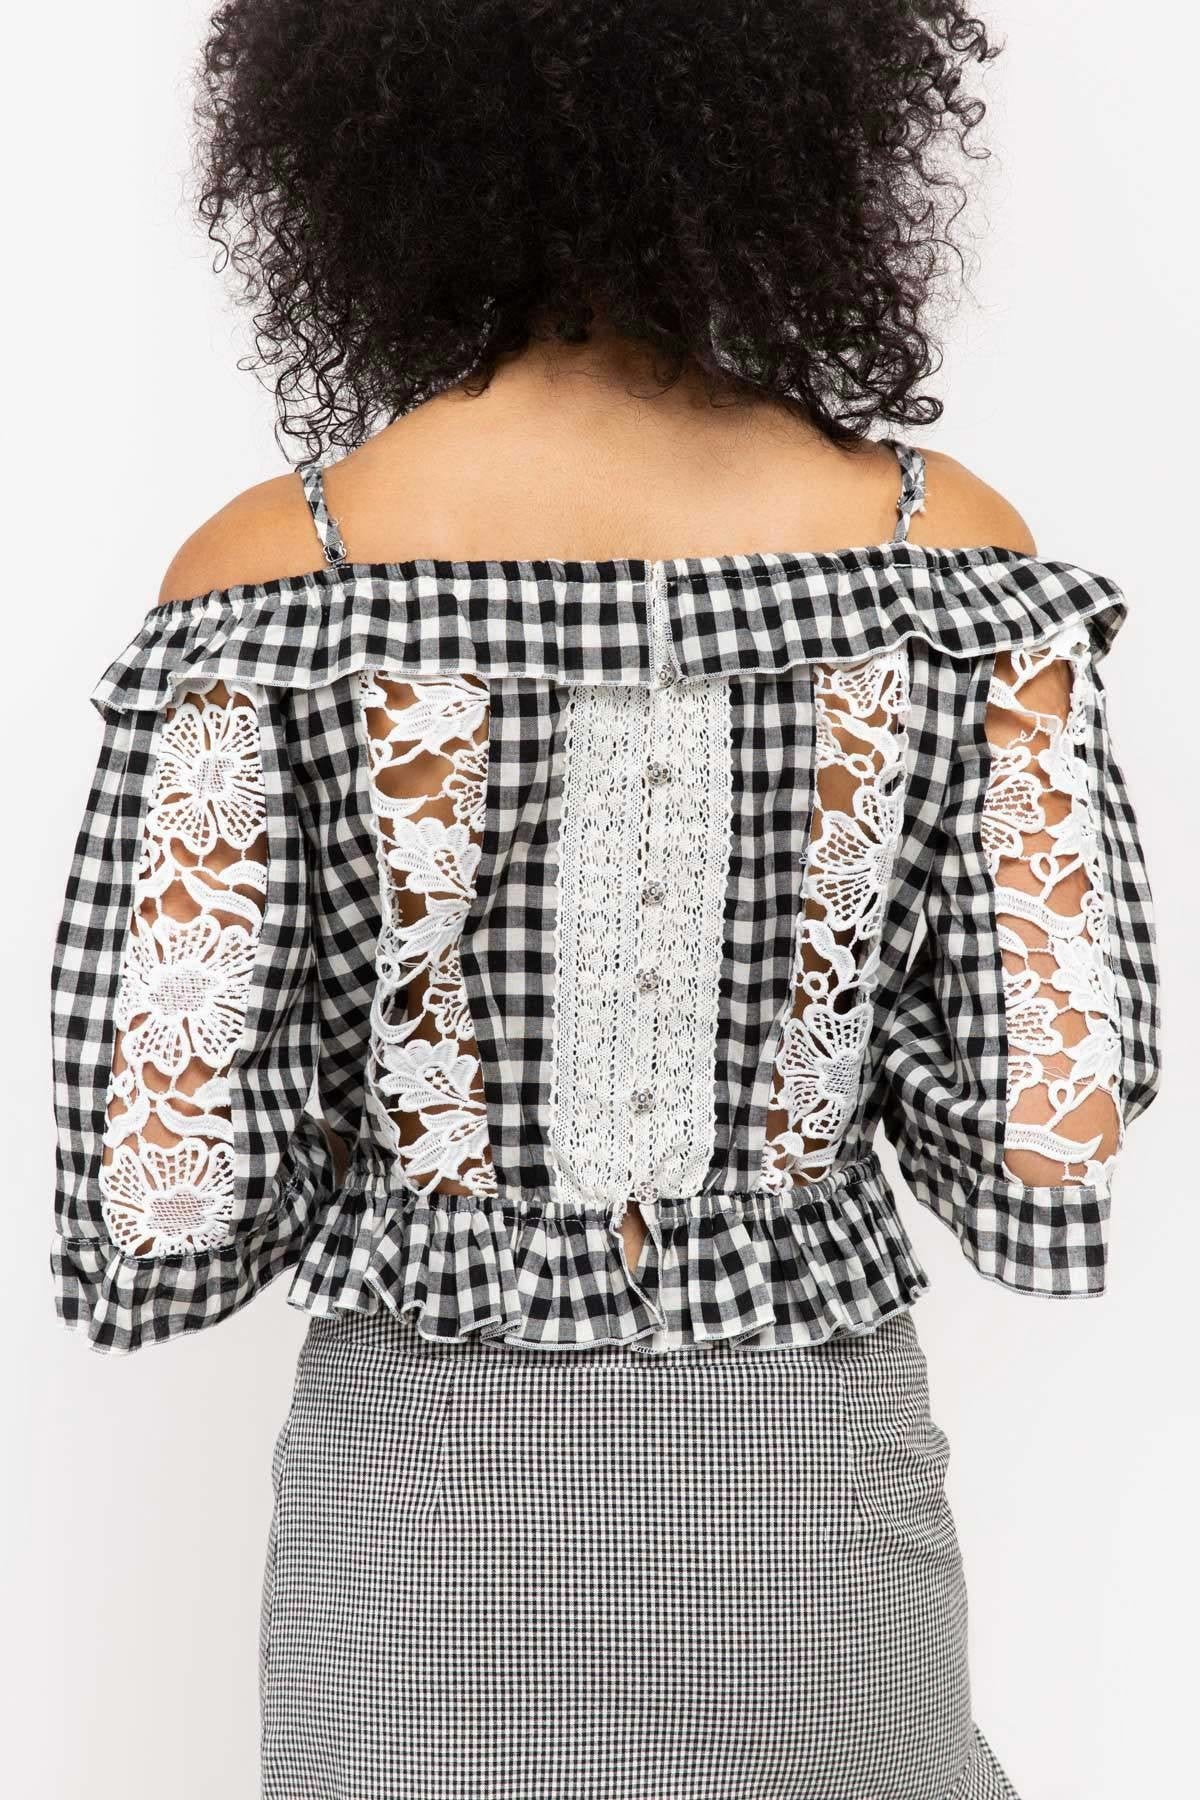 Gingham Crop Top With Crochet Lace Insets - STEVEN WICK